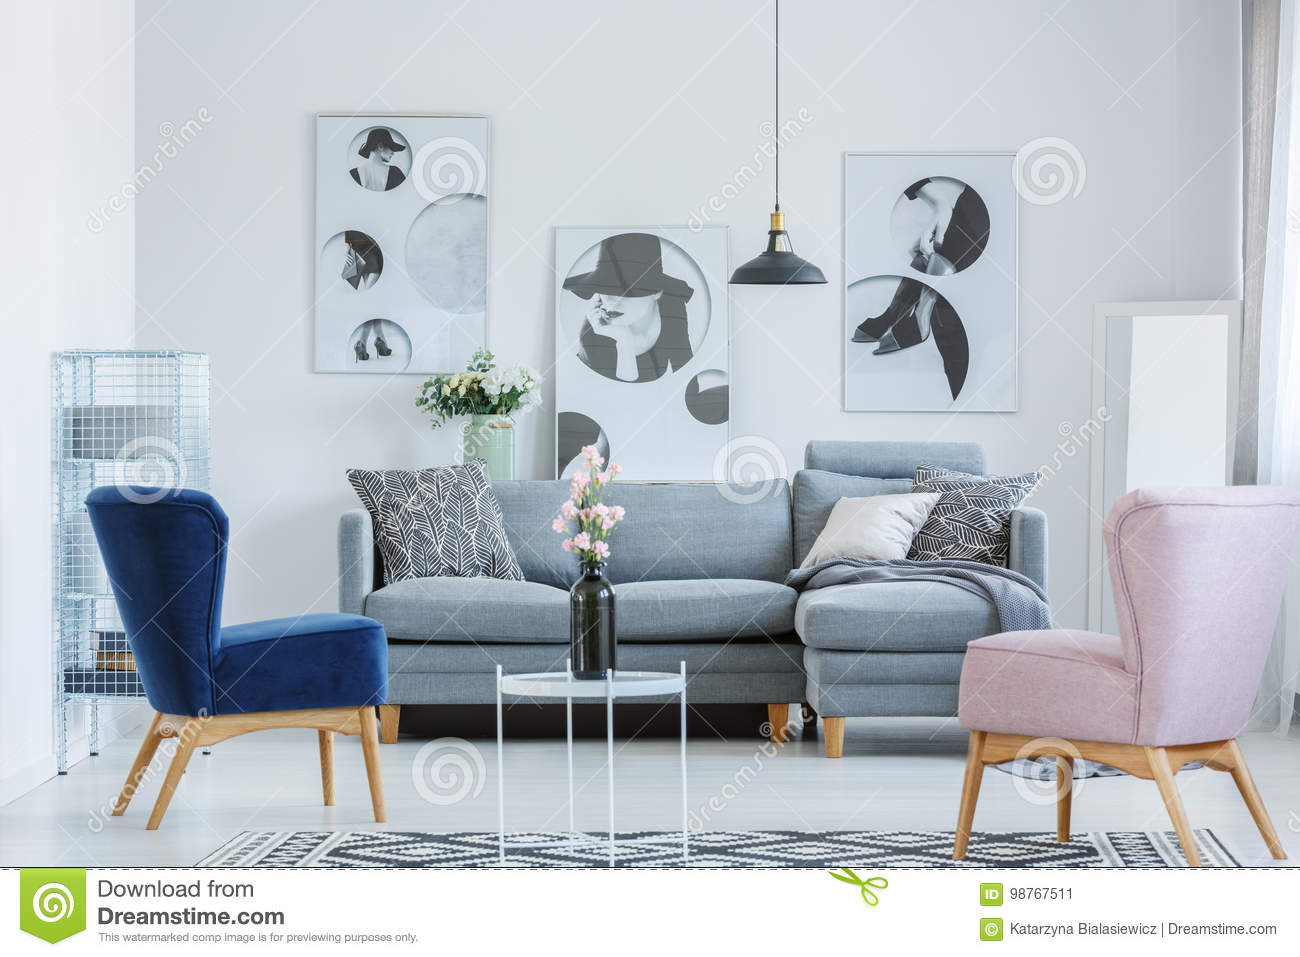 Pink And Blue Armchair Stock Image Image Of Lamp Flat 98767511